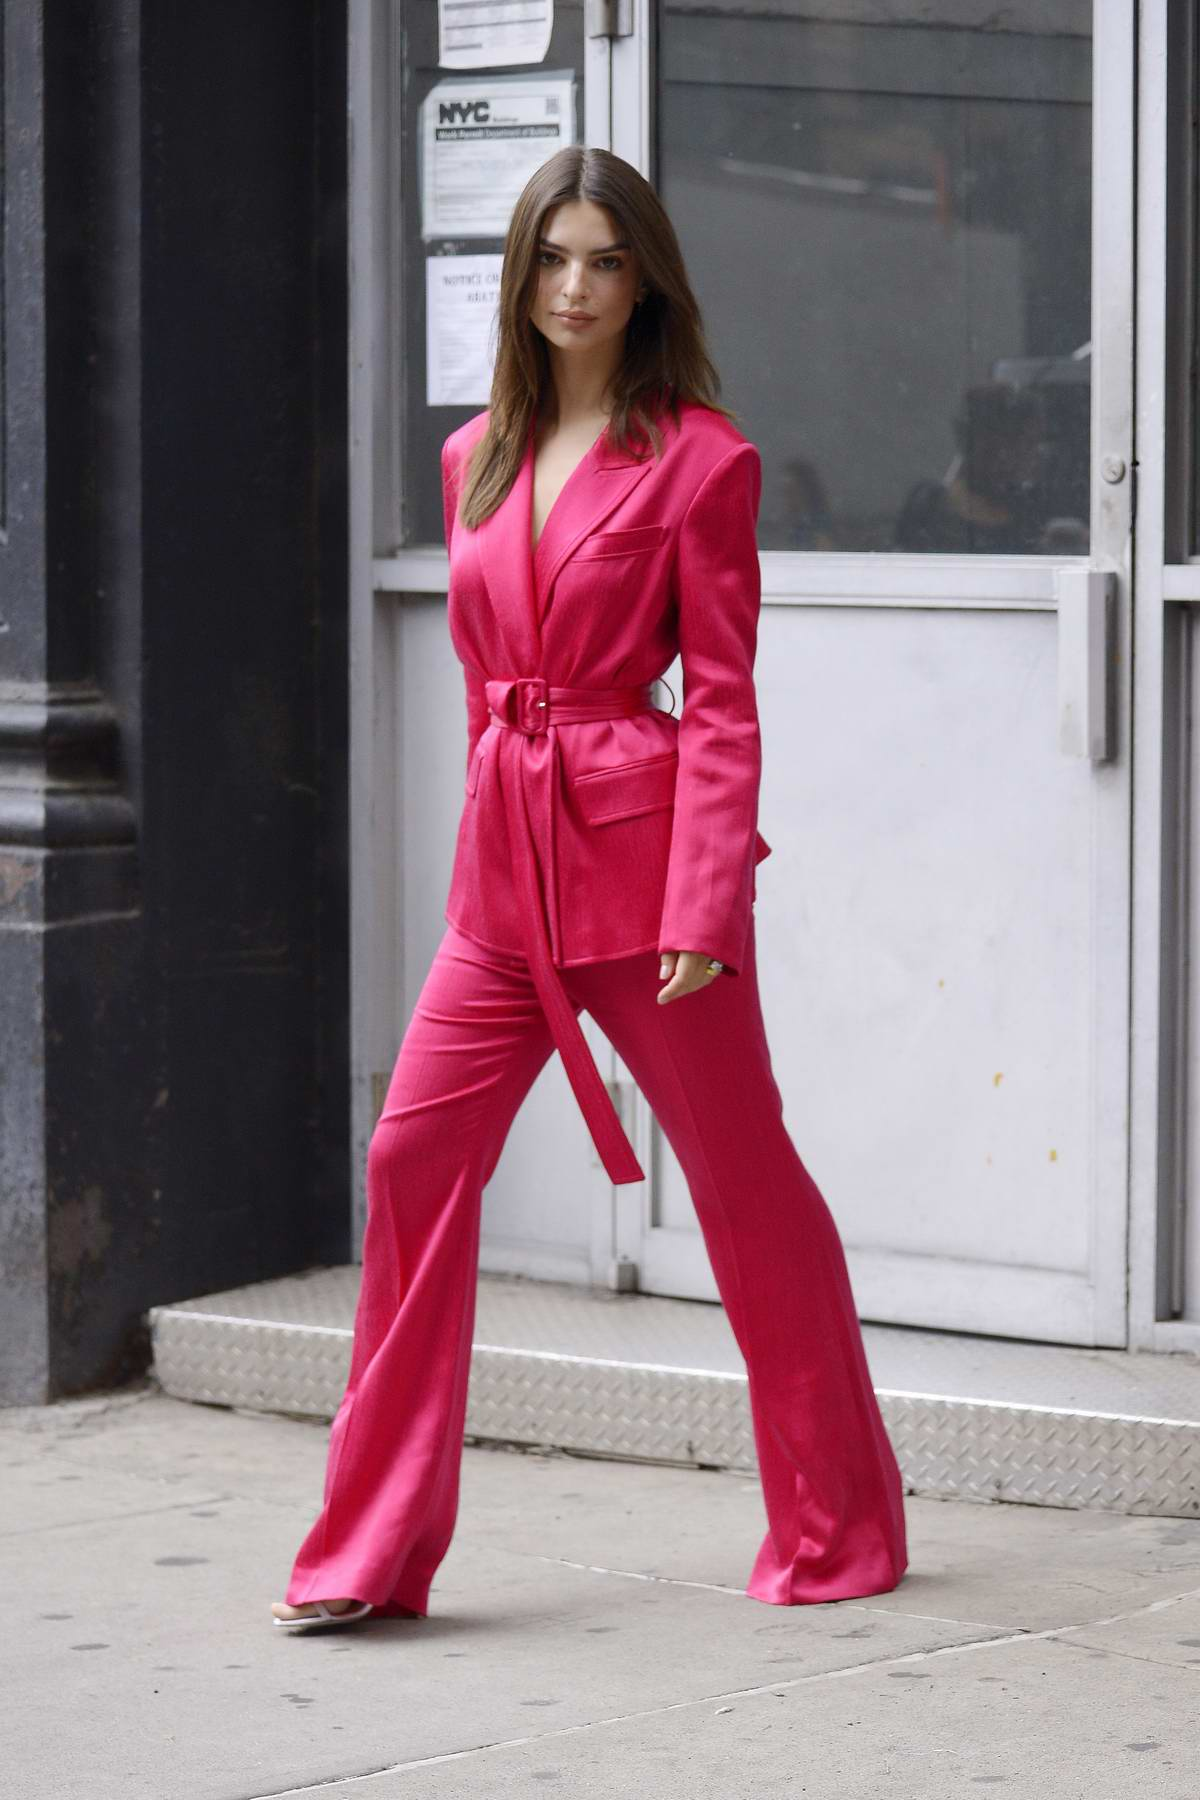 Emily Ratajkowski steps out in hot pink in New York City